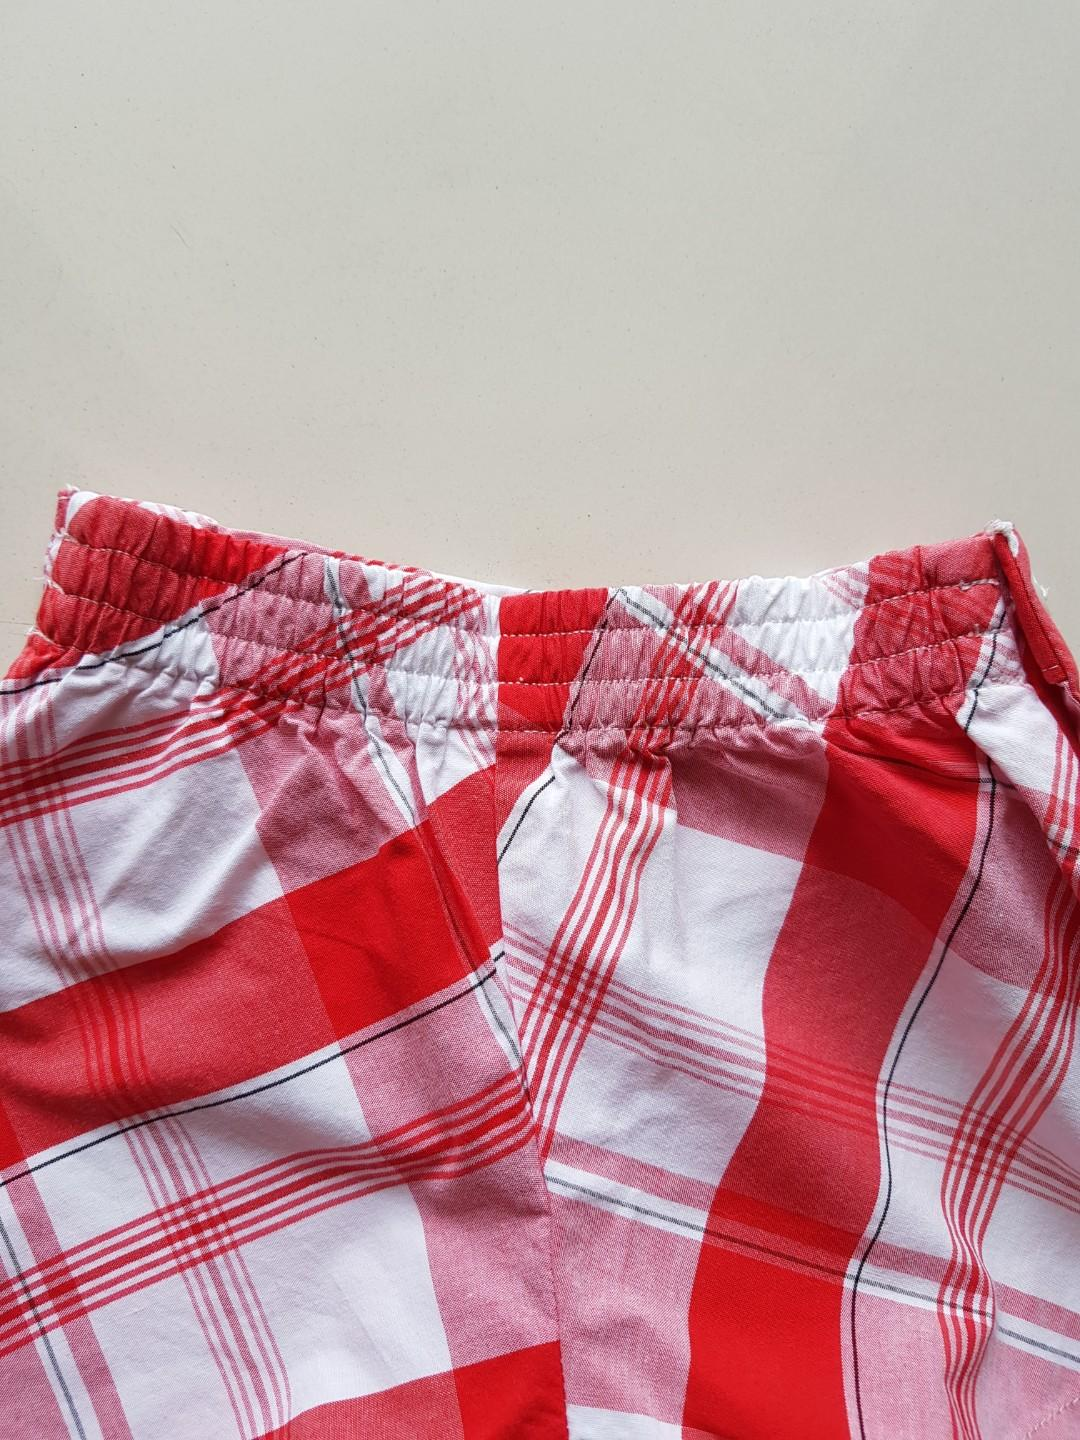 Janie and Jack (bought in the US 🇺🇸) Checkers Shorts